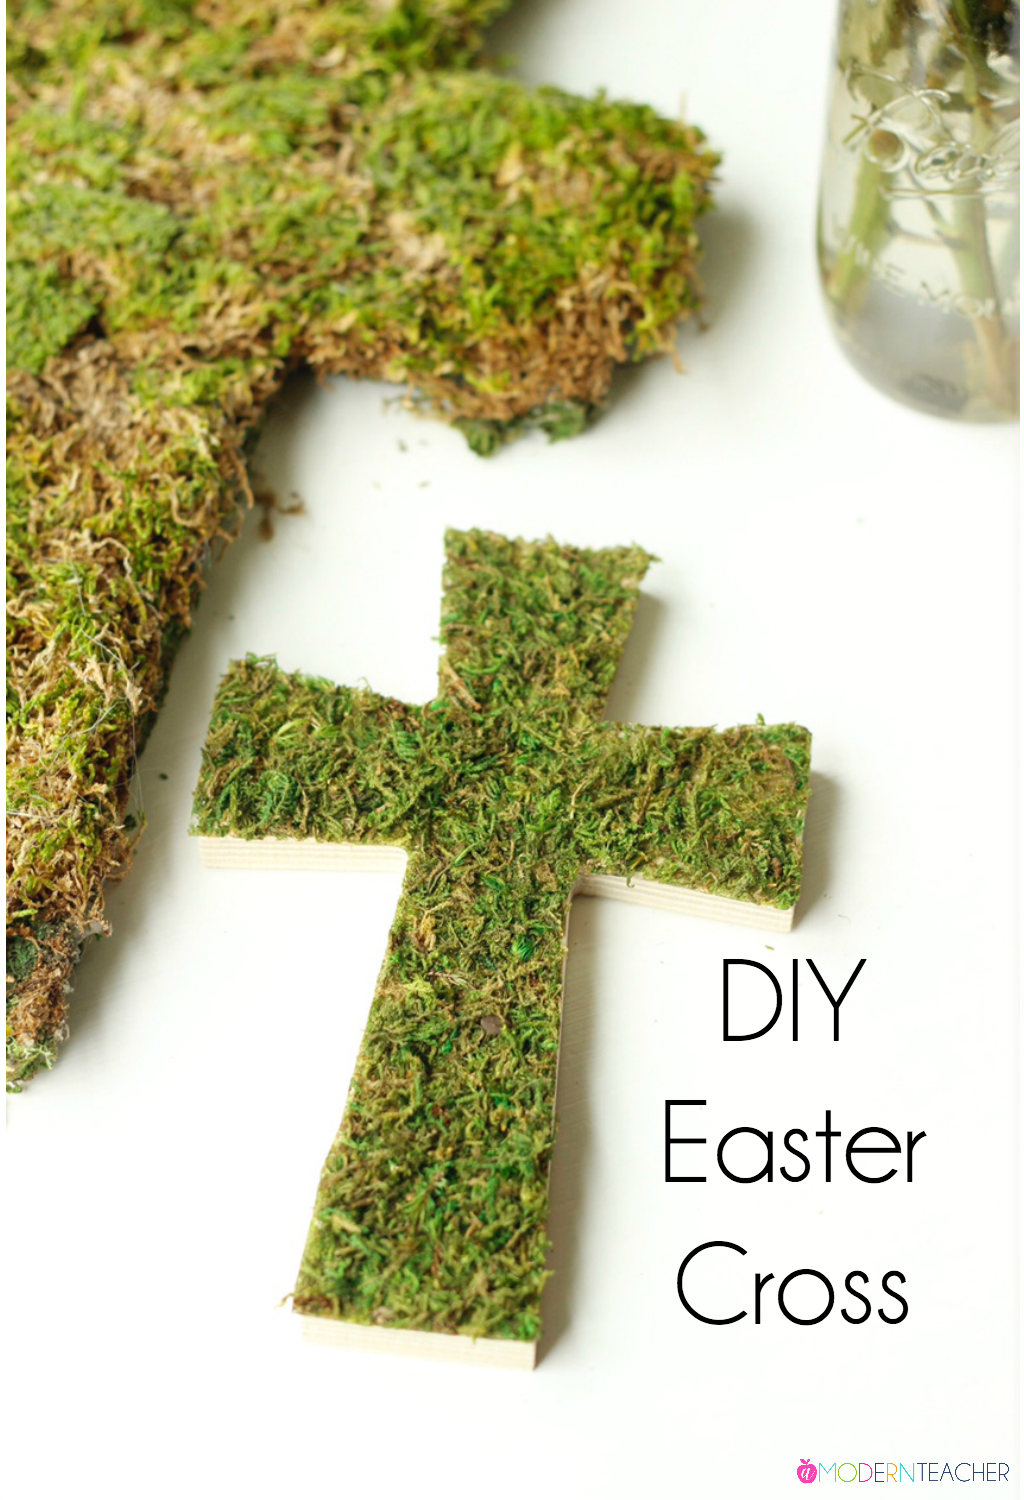 DIY Easter Cross is the perfect addition to your spring home decor and Easter Brunch. A simple spring project you can complete in no time.